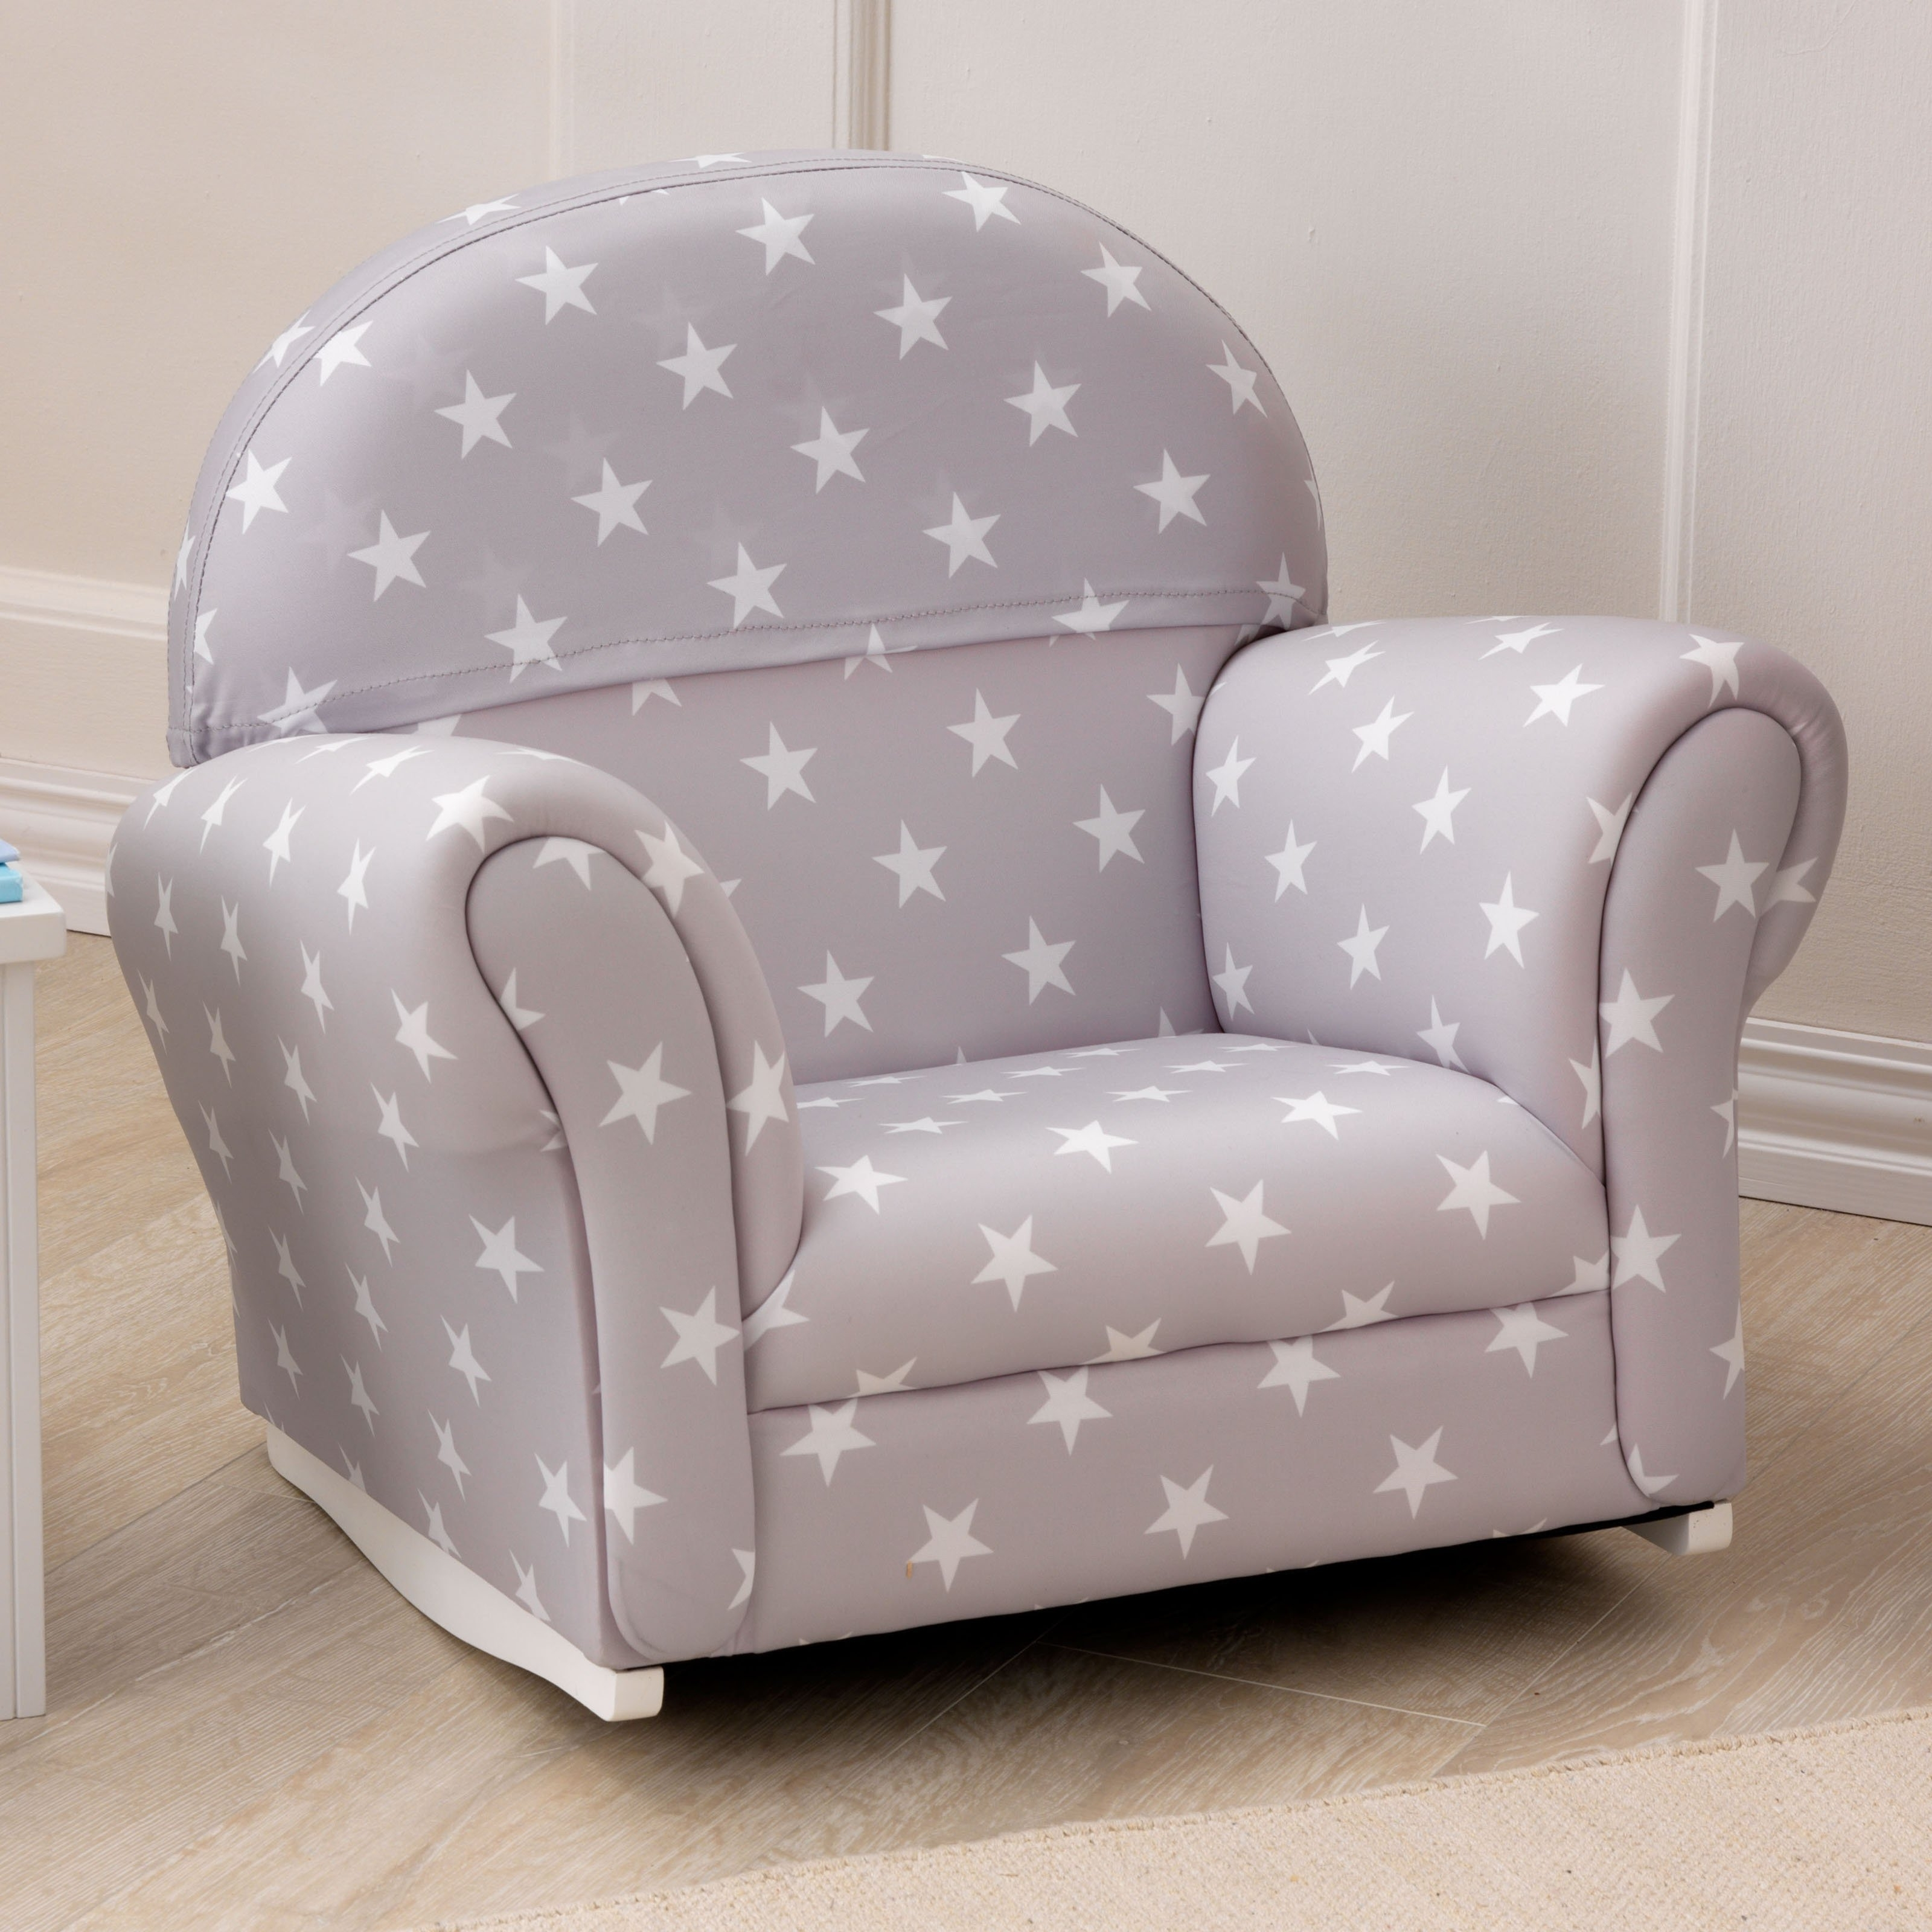 Trendy Personalized Kids Chairs And Sofas Intended For Armchair : Ikea Kids Stool Kids Chairs Ikea Toddler Chair Ikea (View 7 of 15)